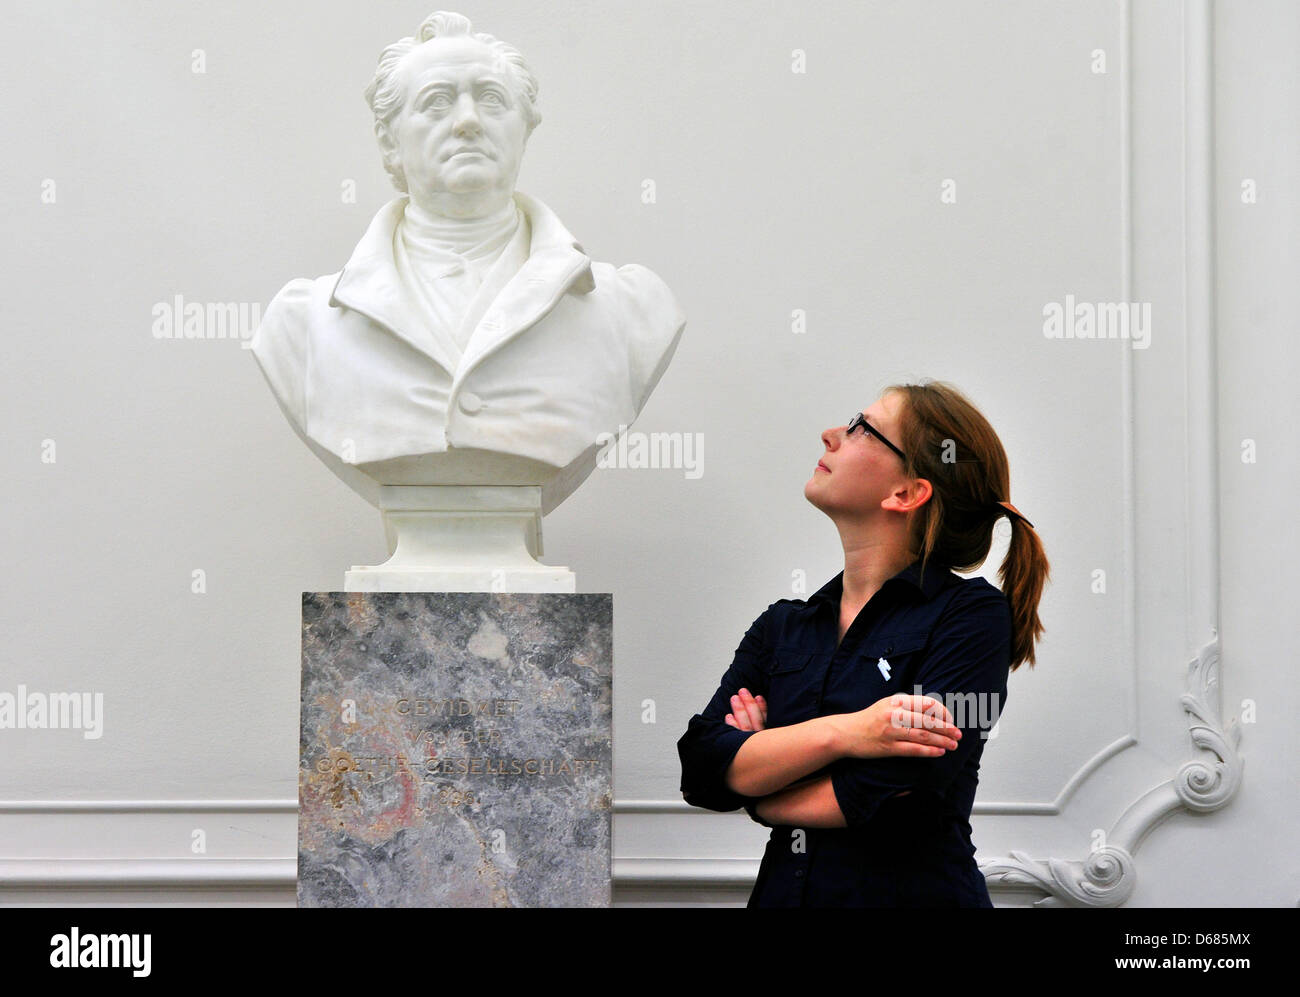 A young woman views a bust ofJohann Wolfgang Goethe at the Goethe and Schiller Archives in Weimar, Germany, 05 July - Stock Image